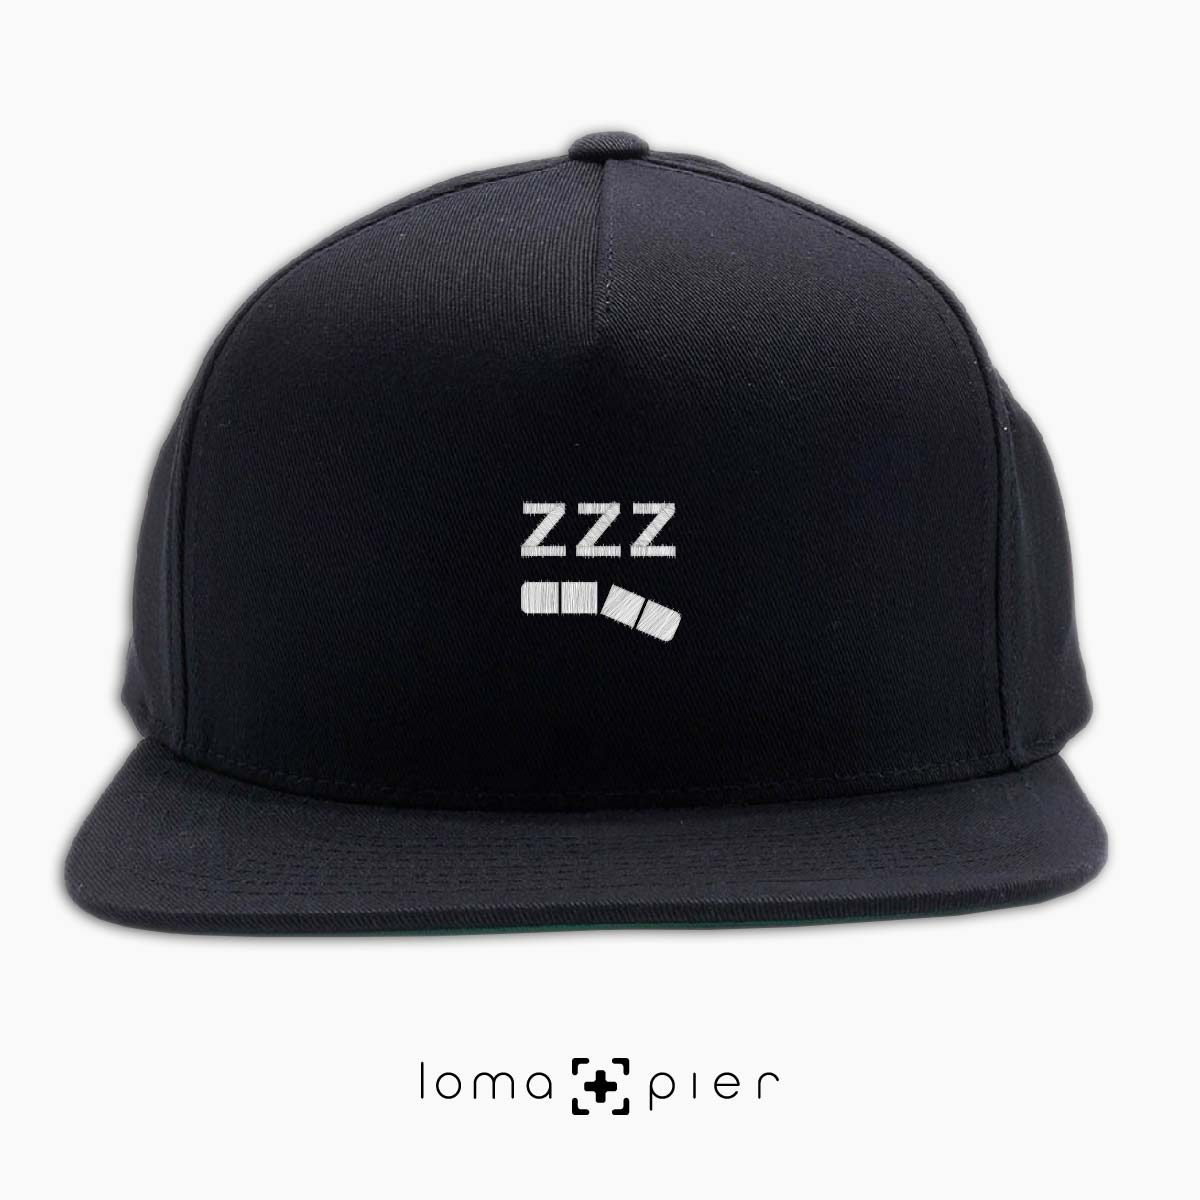 ZZZ-ANNY icon embroidered on a black classic snapback hat with white thread by loma+pier hat store